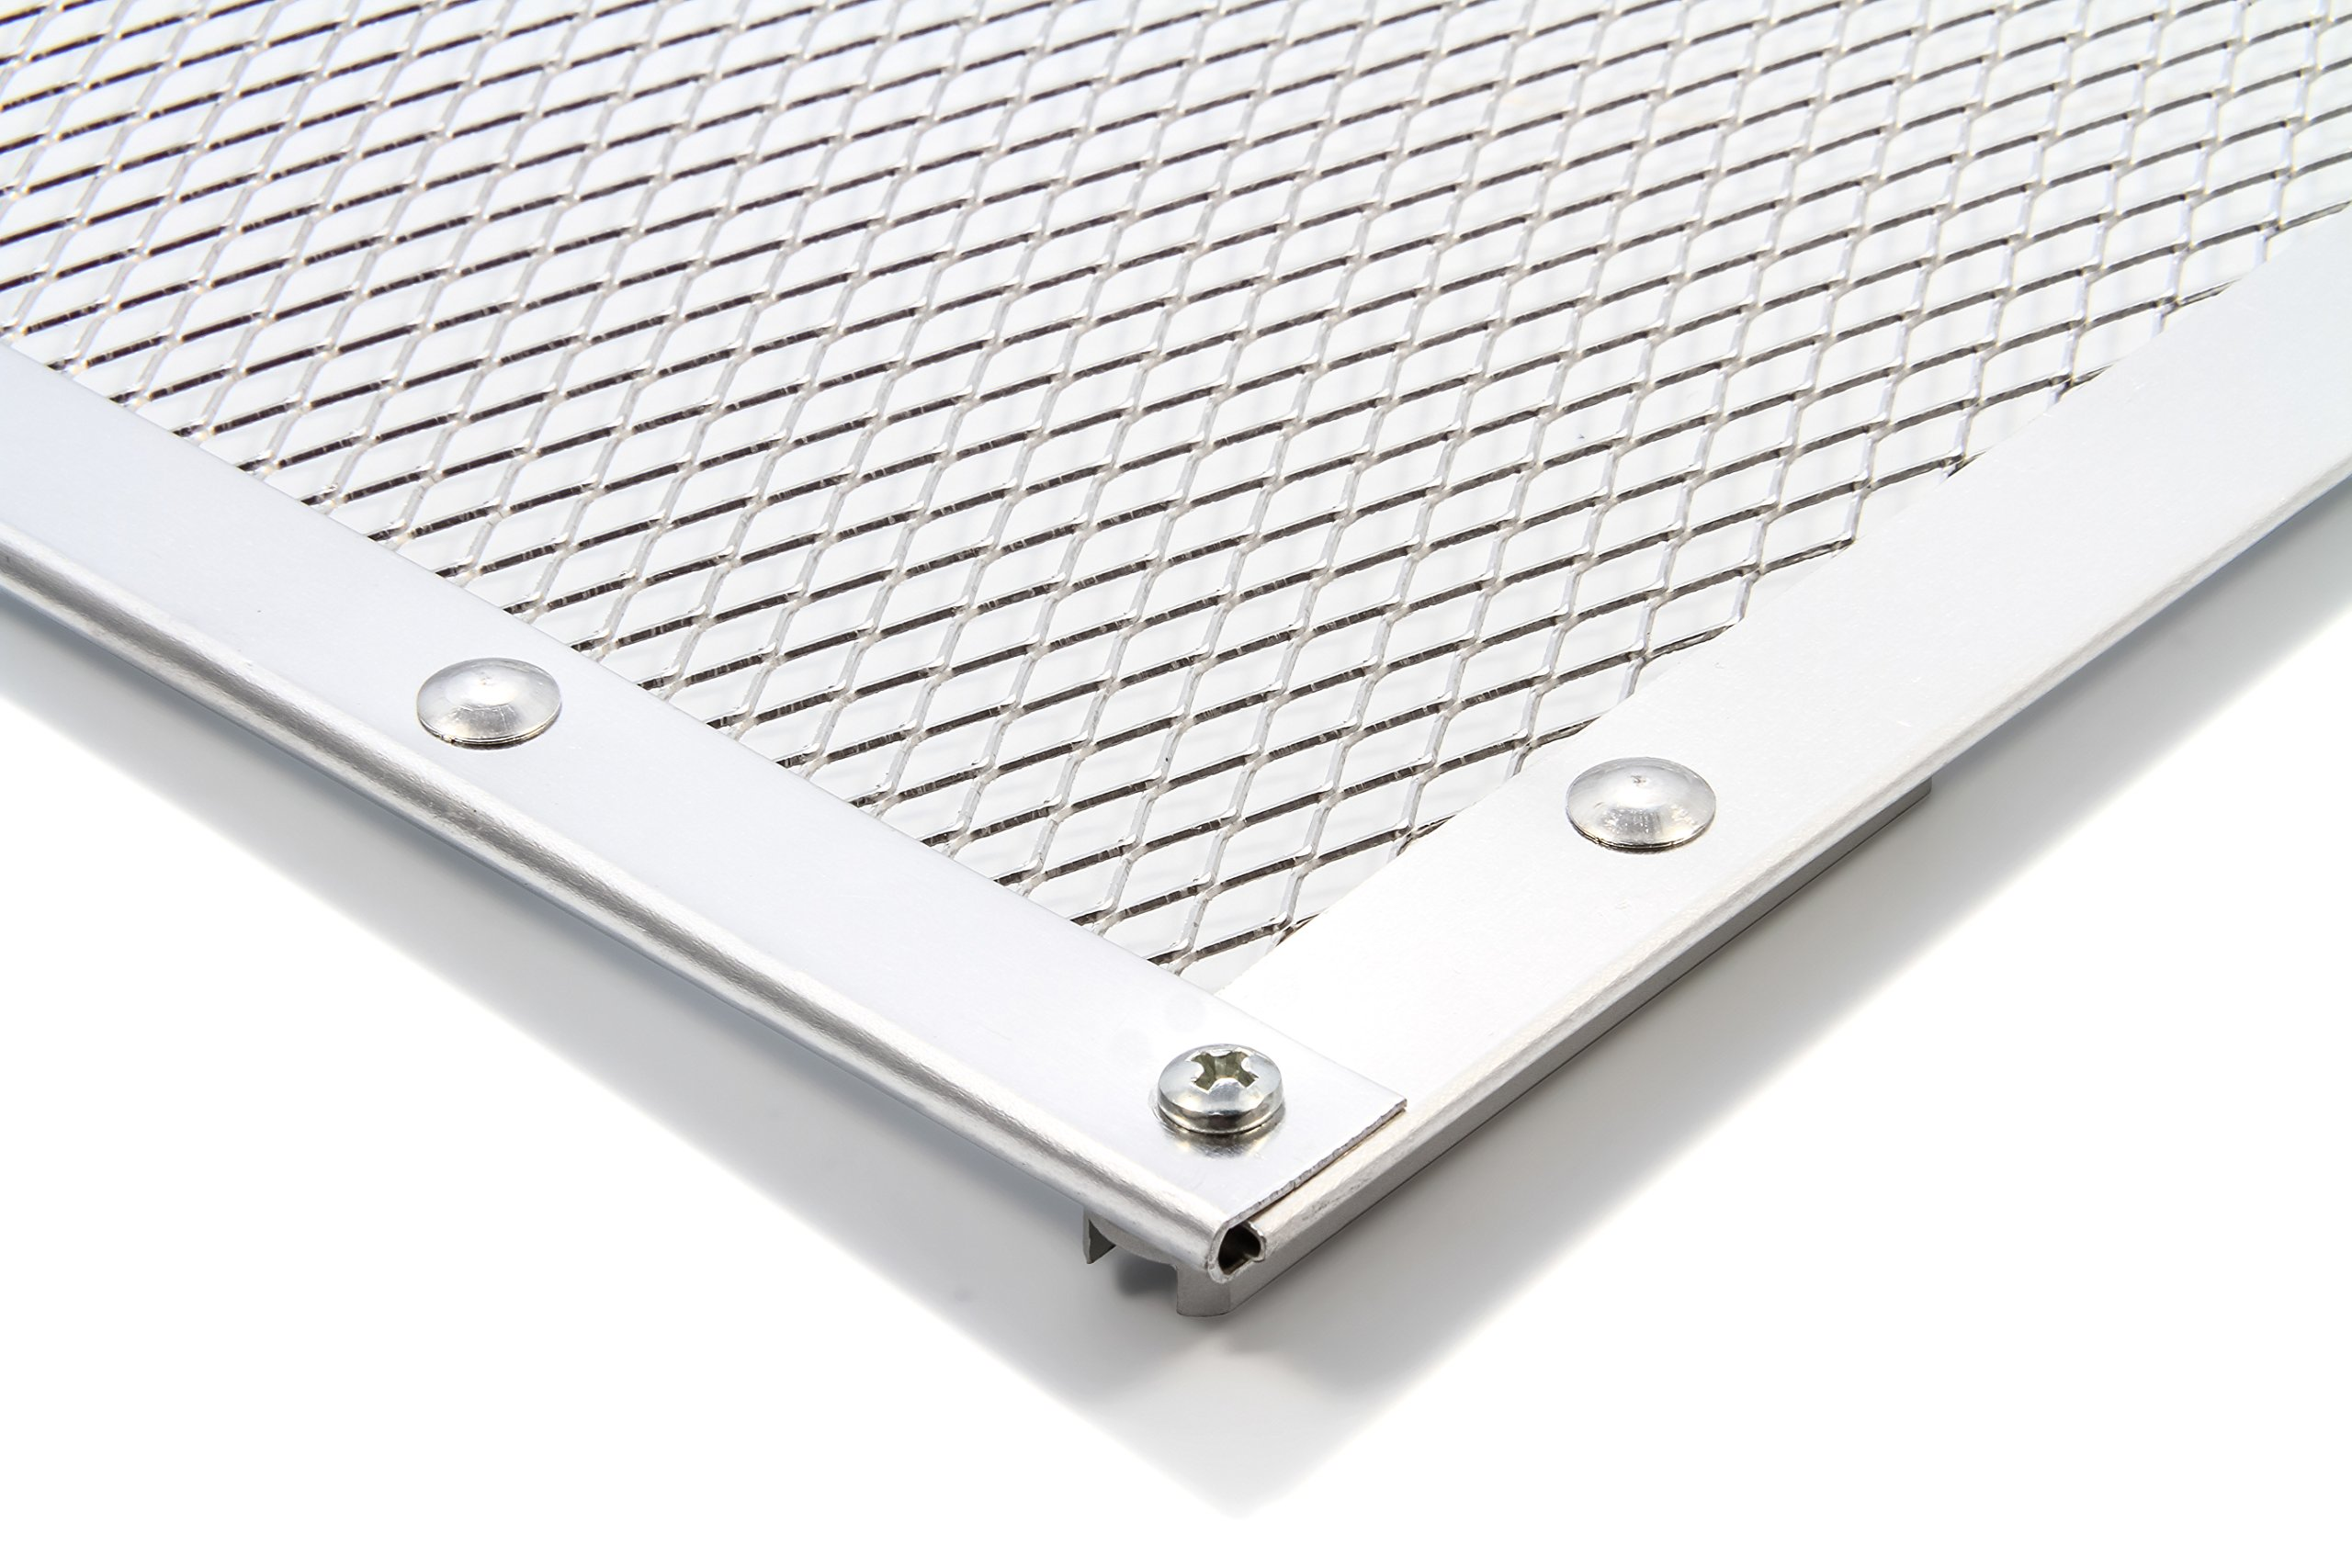 Camco 43981 Aluminum Screen Door Standard Mesh Grille - Protects Your RV's Screen Door, Anodized Aluminum Will Not Corrode by Camco (Image #4)